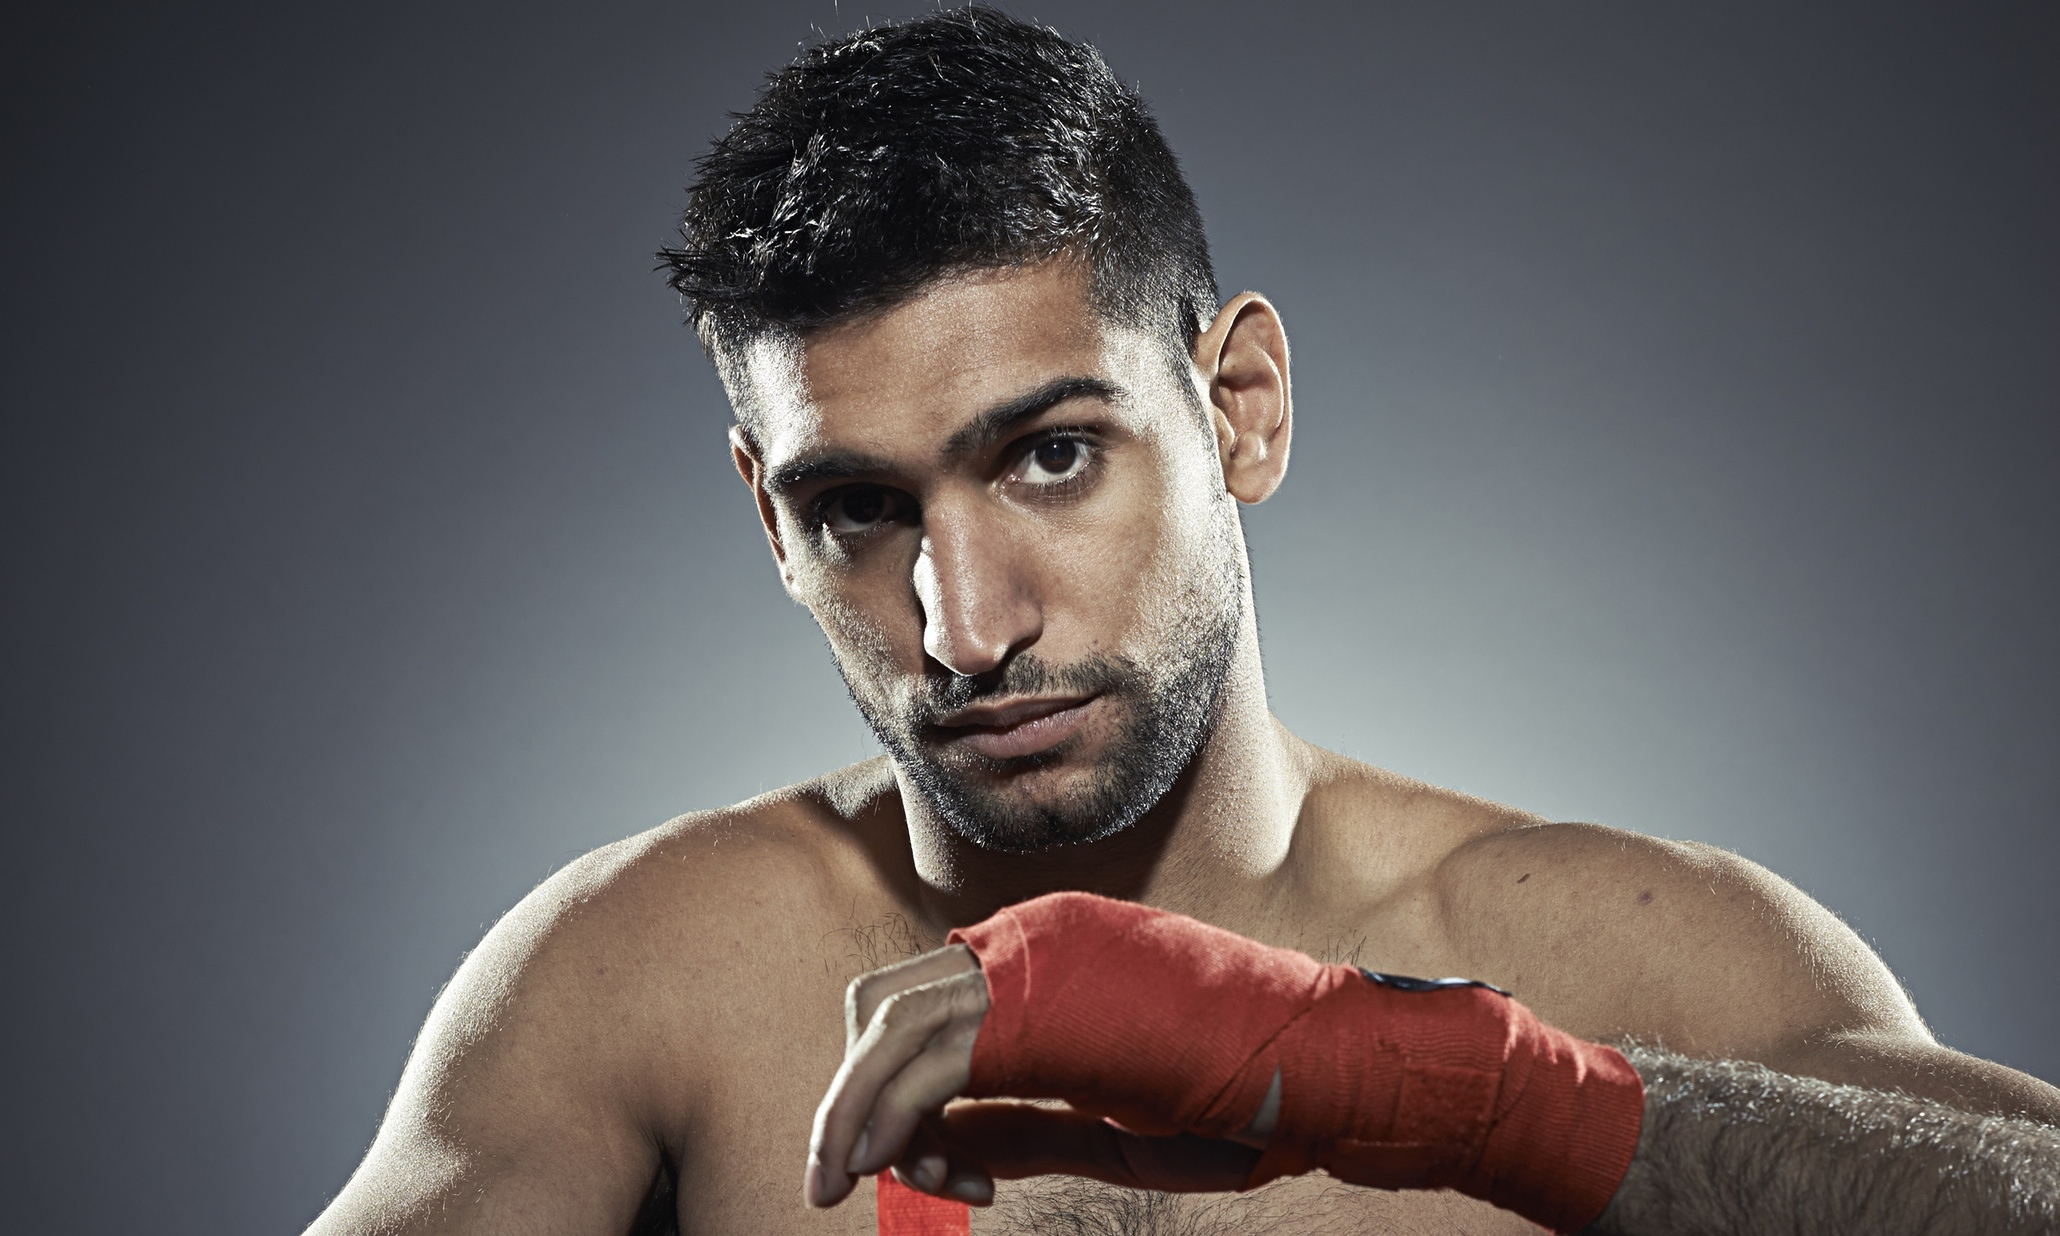 amir khan complains about psb creating hurdles during virus support